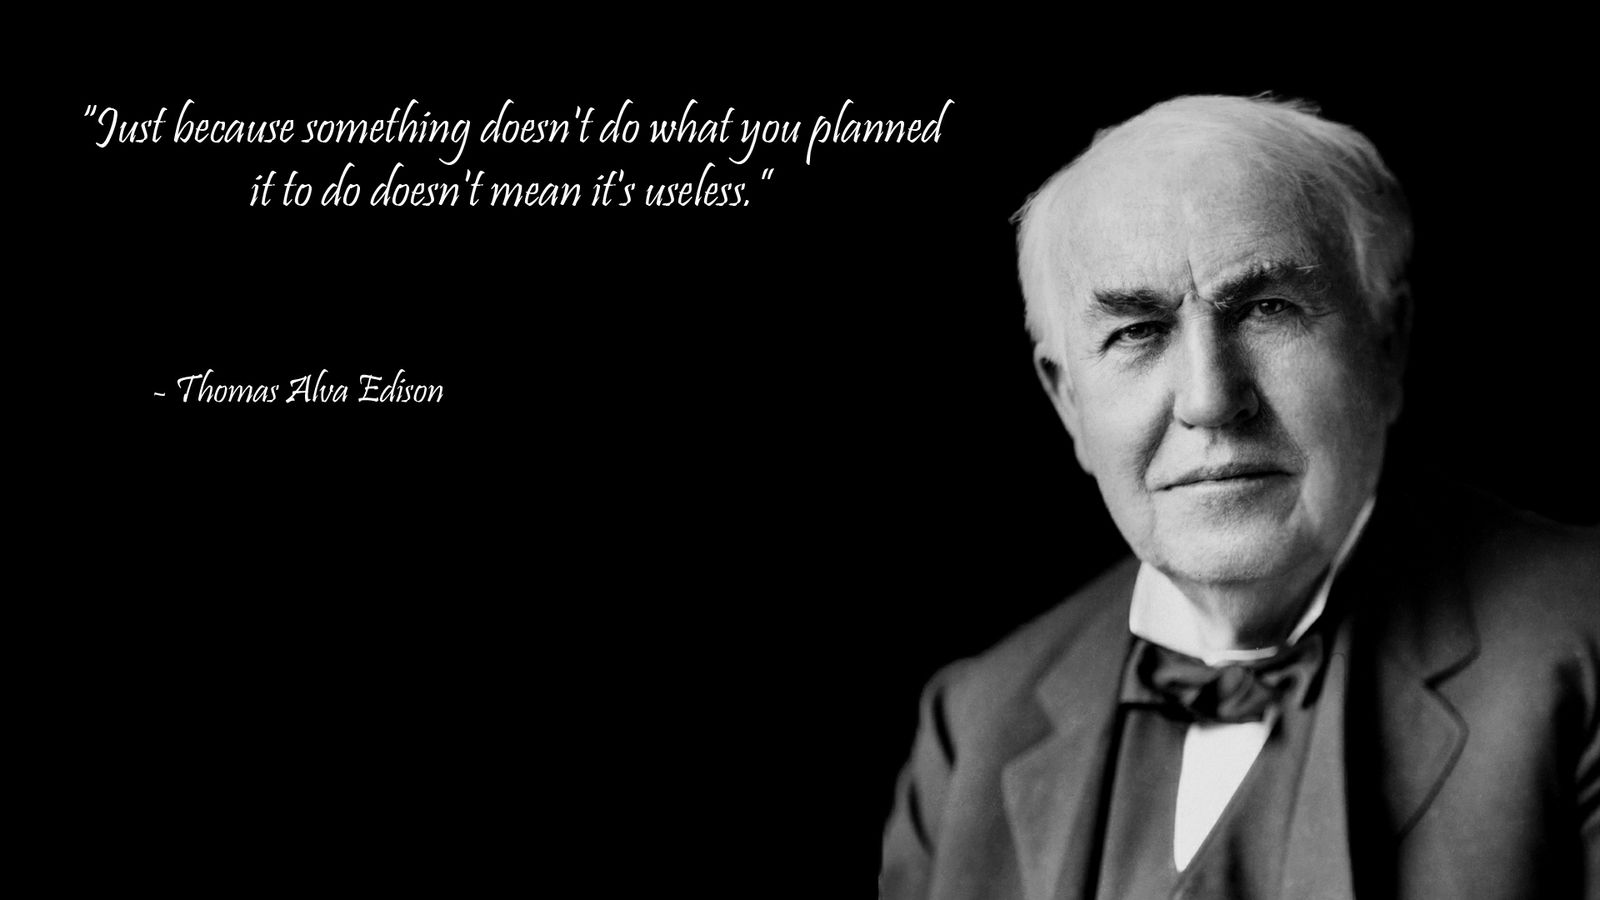 Thomas Edison quote Wallpaper Wisdom quotes Thomas edison 1600x900